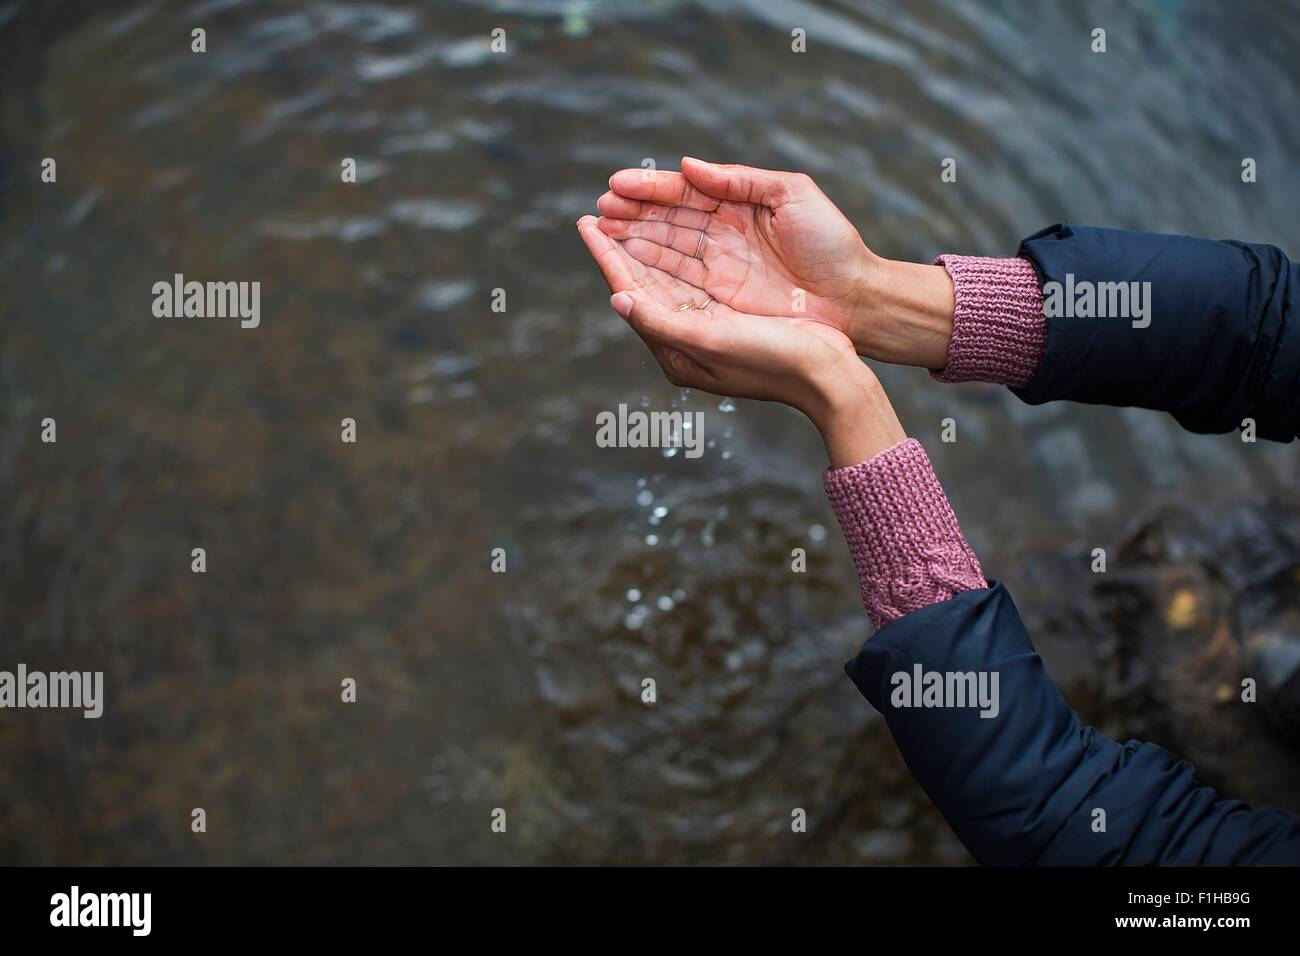 Woman holding water in cupped hands - Stock Image